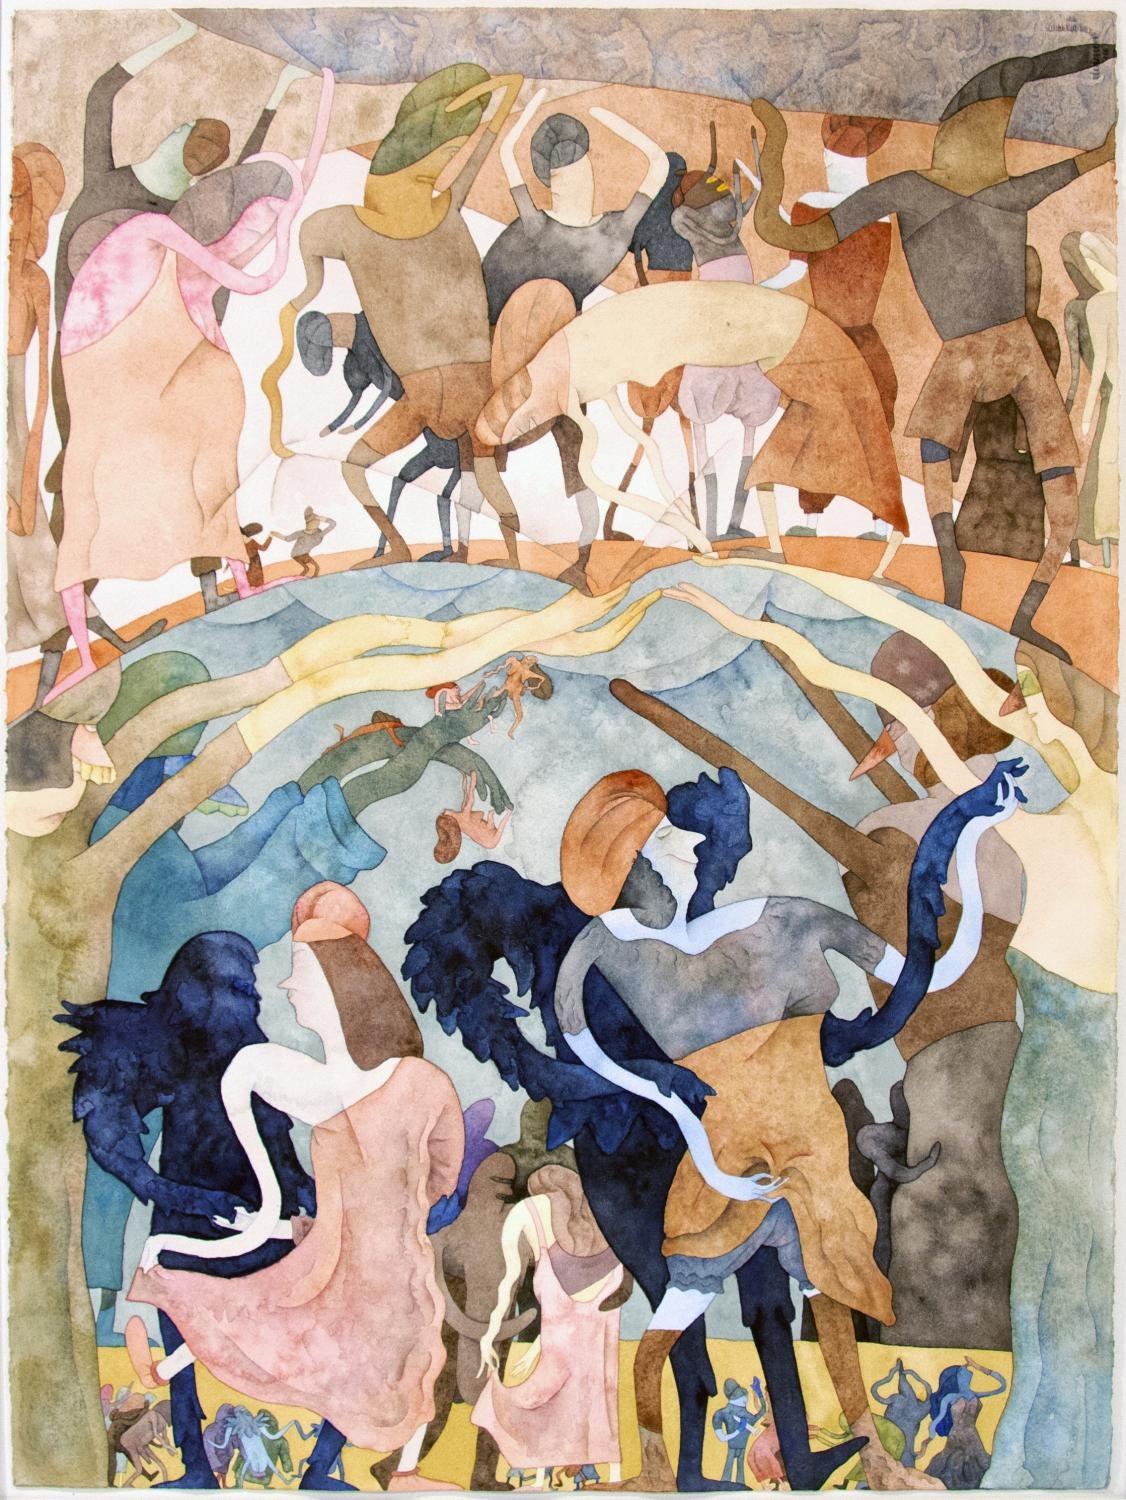 Gladys Nilsson, The Last Ball, 1976. Watercolor on paper. Museum purchase with funds provided by Dean Allen S. Weller and Rachel Weller. 1980-6-1